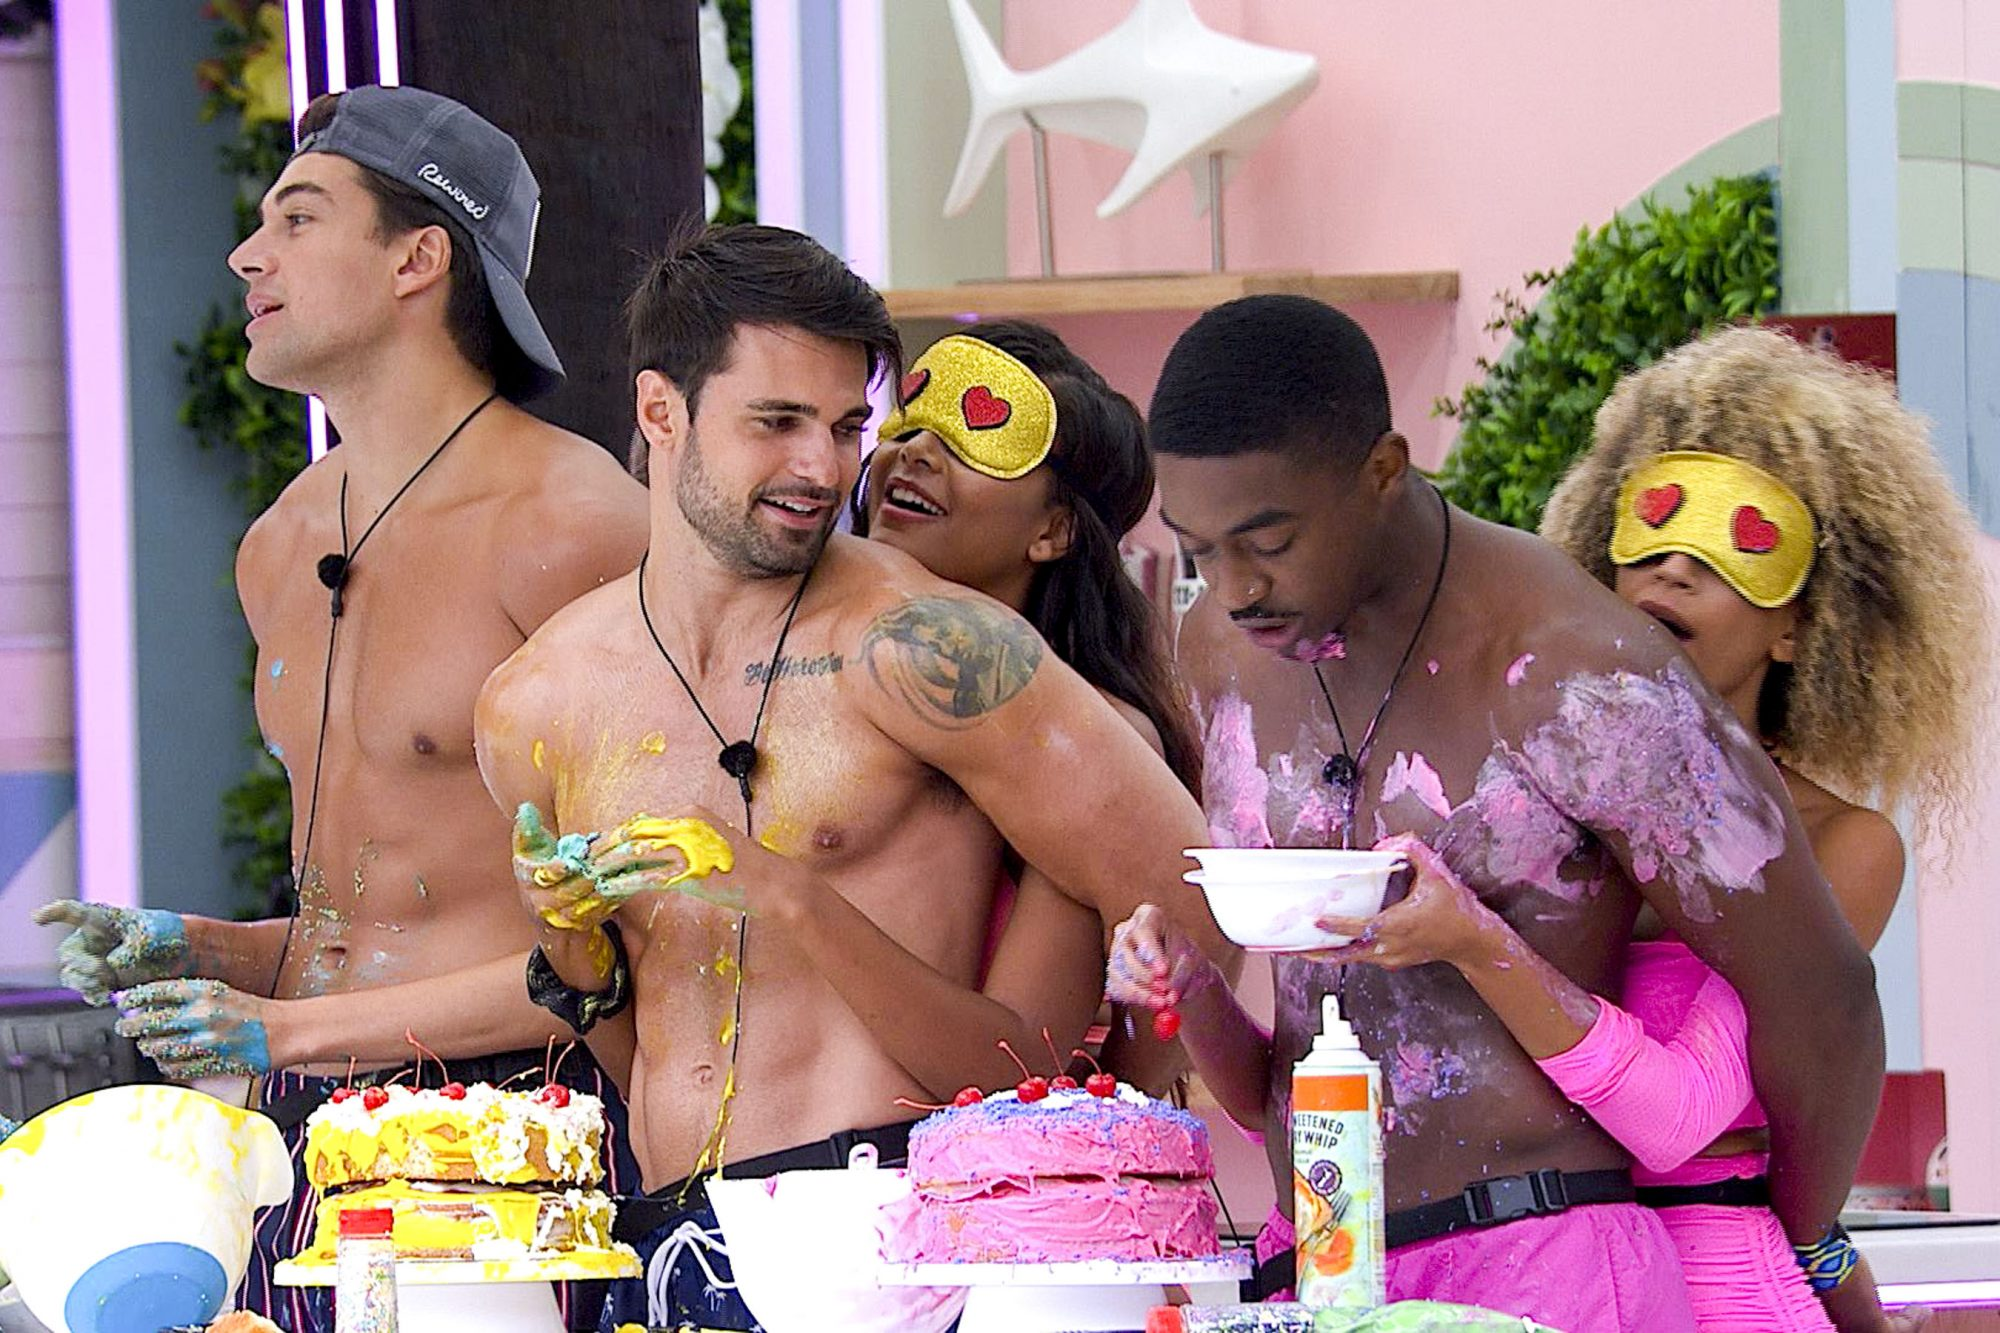 """Love Island - Pictured: Zac Mirabelli, Jered Youngblood, Kyra Green, Ray Gantt and Caroline """"Caro"""" Viehweg. The twentieth episode of Love Island airs tonight, Monday, August 5 (8:00-9:00 PM, ET/PT). New one-hour episodes continue every weeknight through Wednesday, August 7 (8:00-9:00 PM, ET/PT). Photo: Screen Grab/CBS Entertainment ©2019 CBS Broadcasting, Inc. All Rights Reserved."""